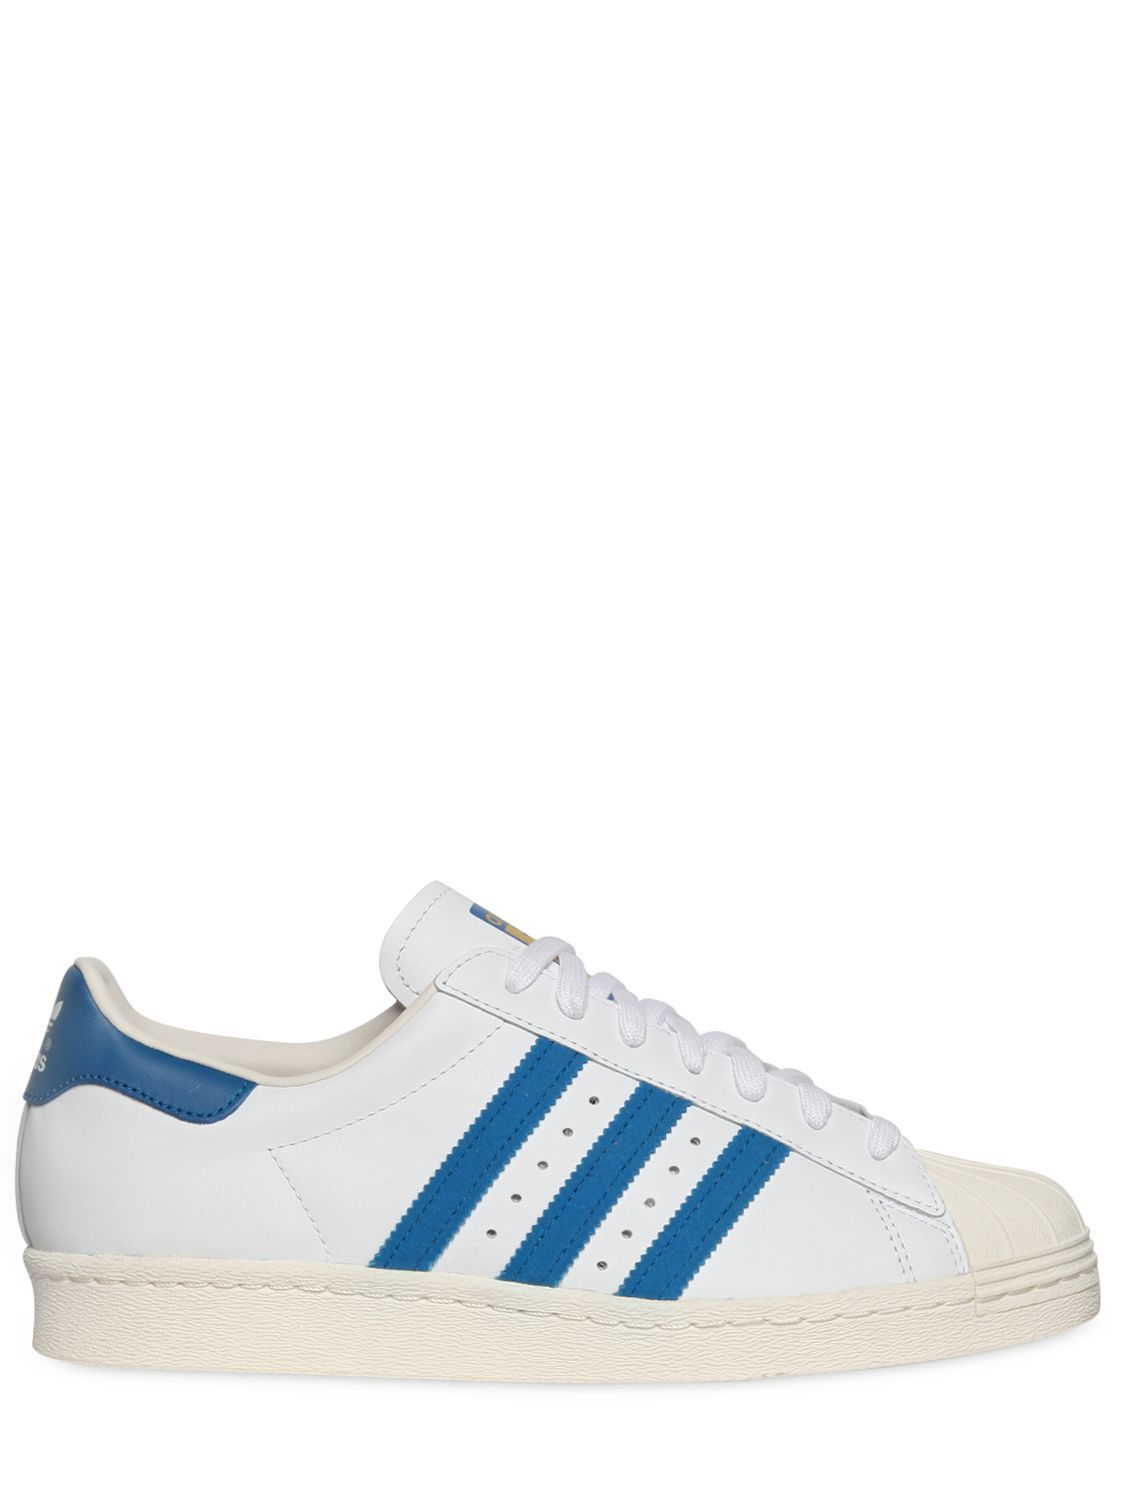 cb11575f0 ADIDAS ORIGINALS - SUPERSTAR 80'S LEATHER SNEAKERS - LUISAVIAROMA - LUXURY  SHOPPING WORLDWIDE SHIPPING - FLORENCE